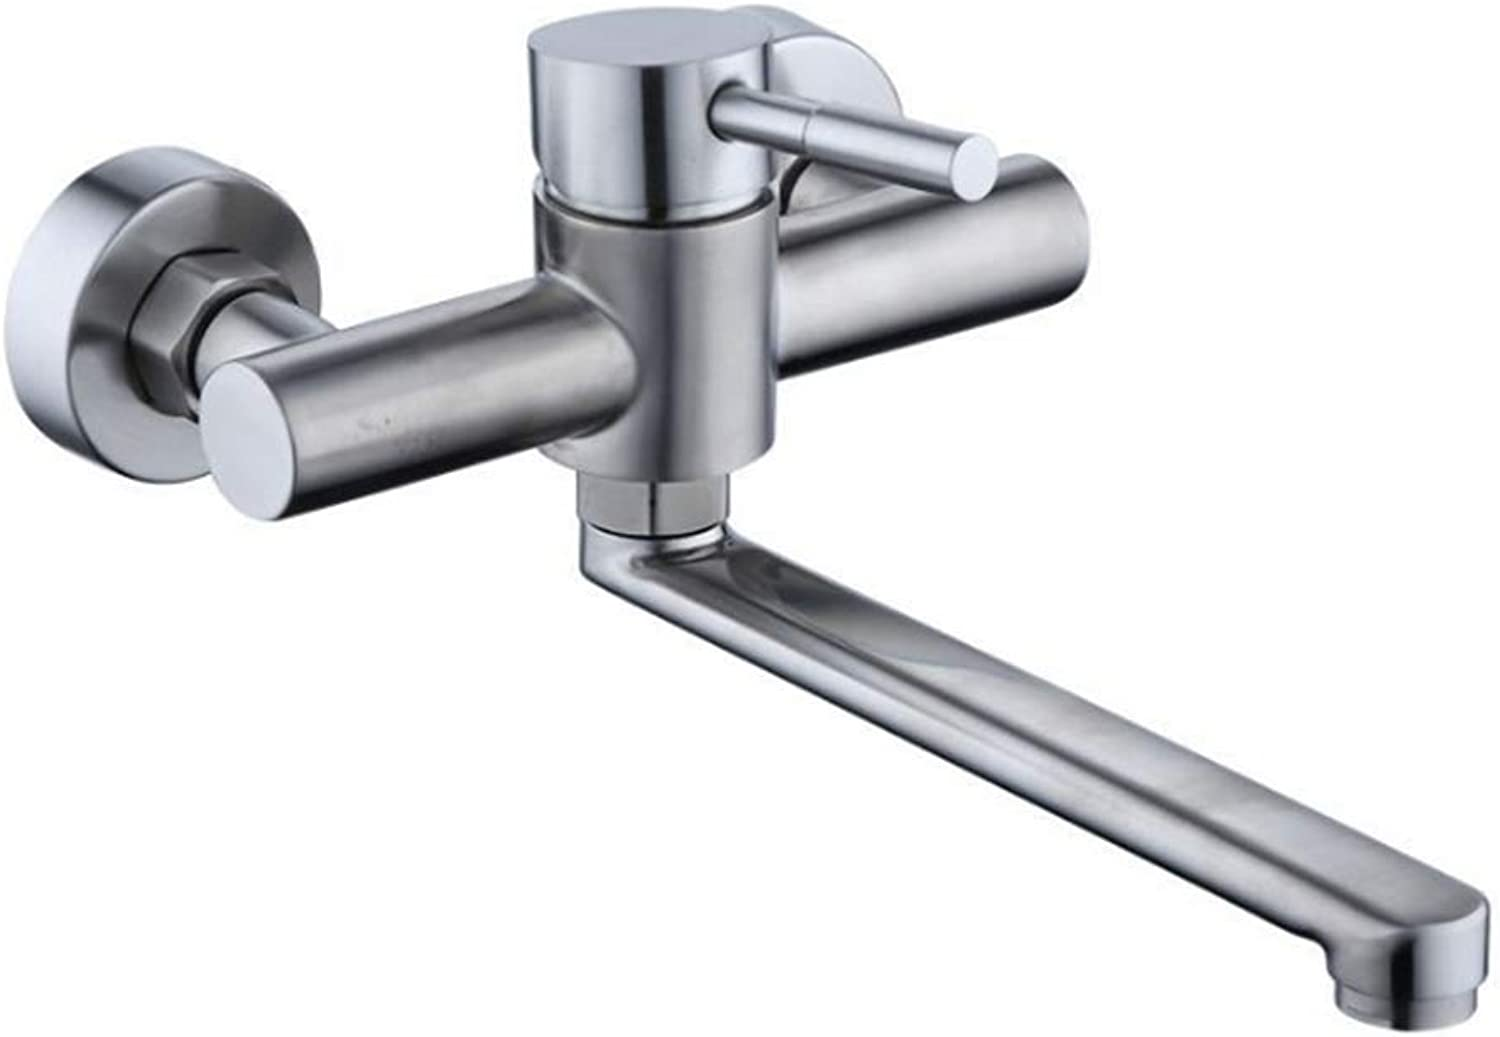 Counter Drinking Designer Arch304 Stainless Steel Tap for Cold and Hot Dishwash Basin